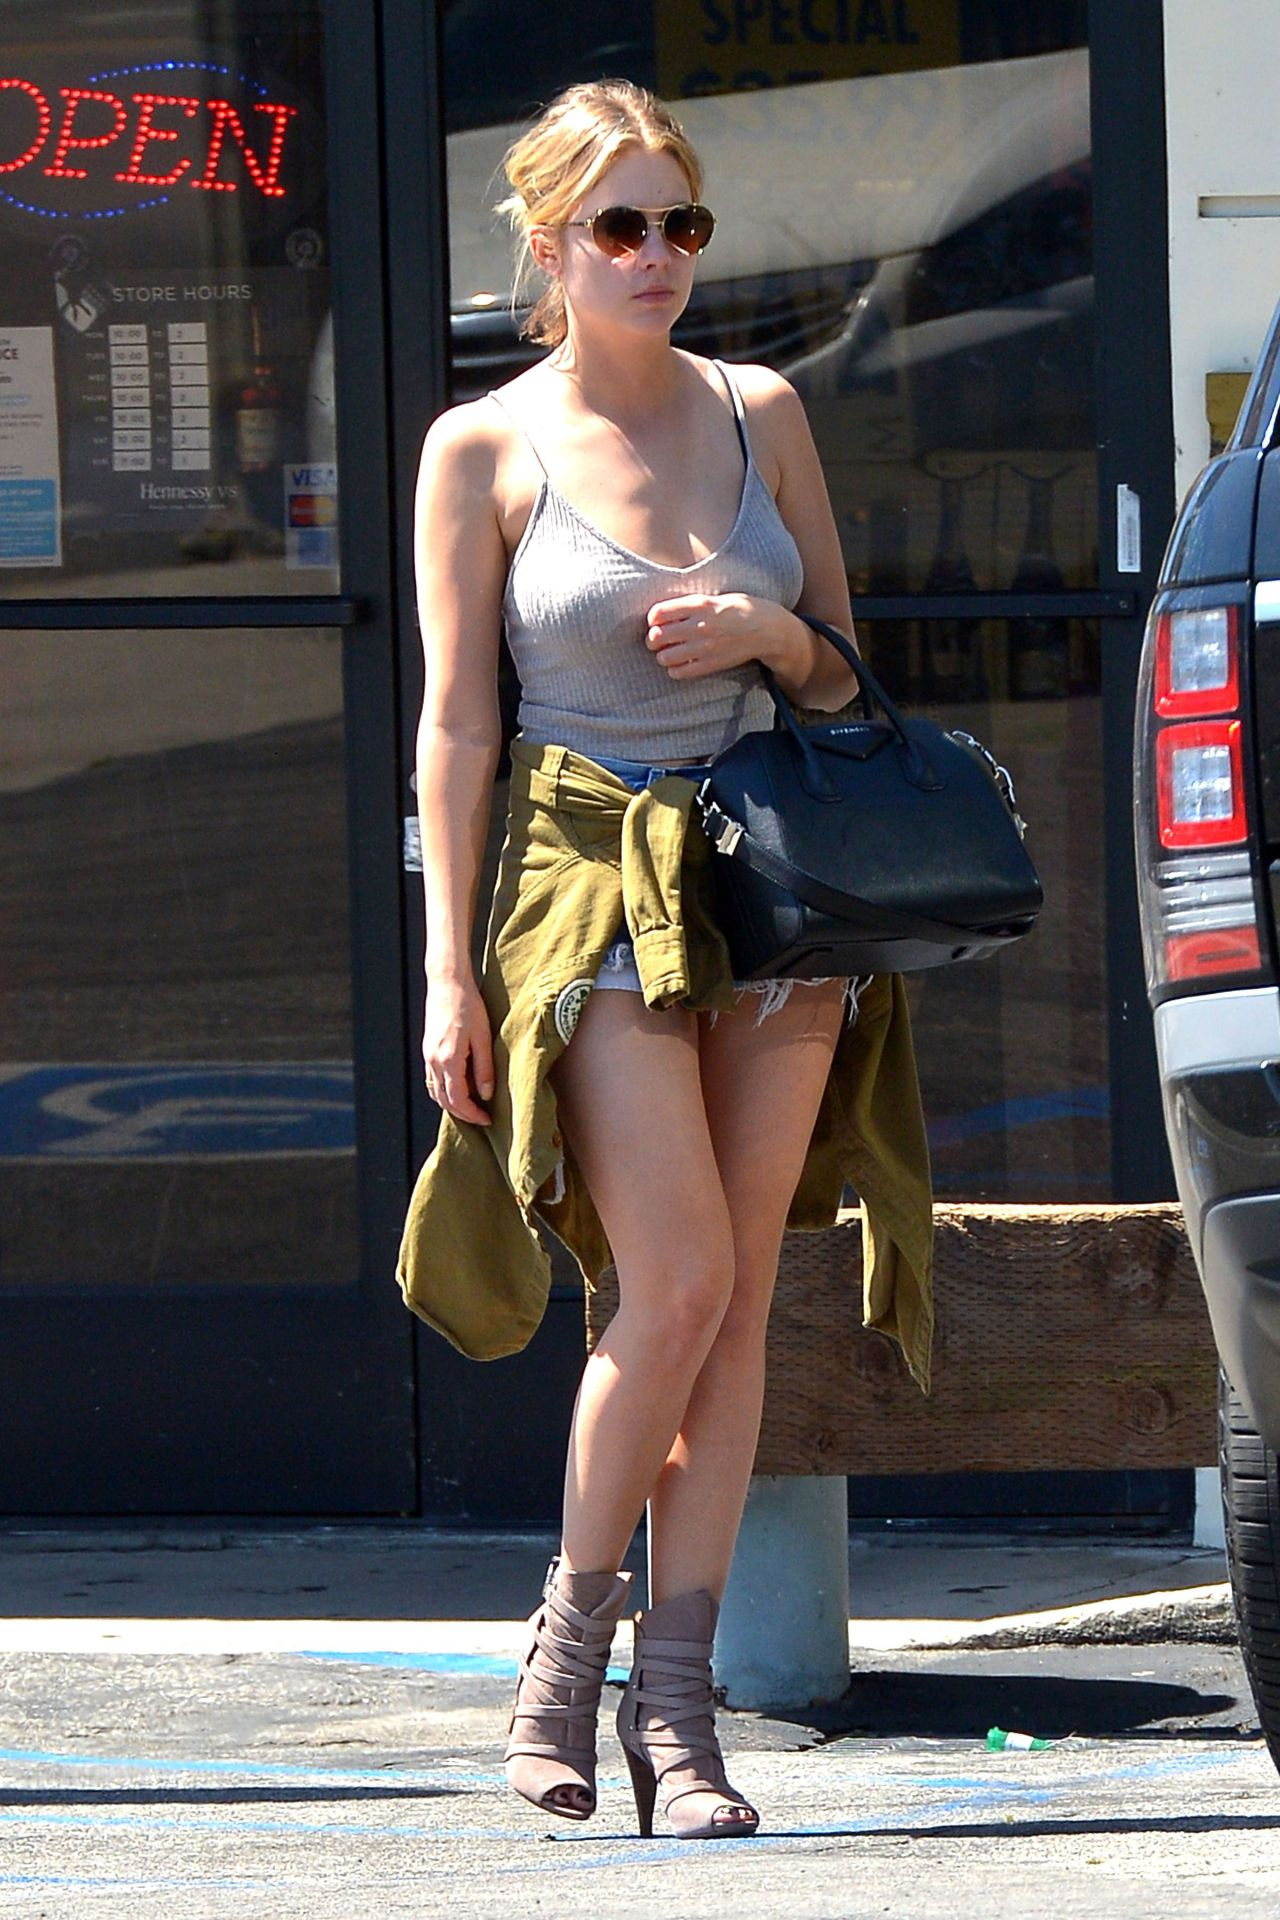 Ashley Benson Shows Off Her Legs in Jeans Shorts - at a Liquor Store in LA, March 2015